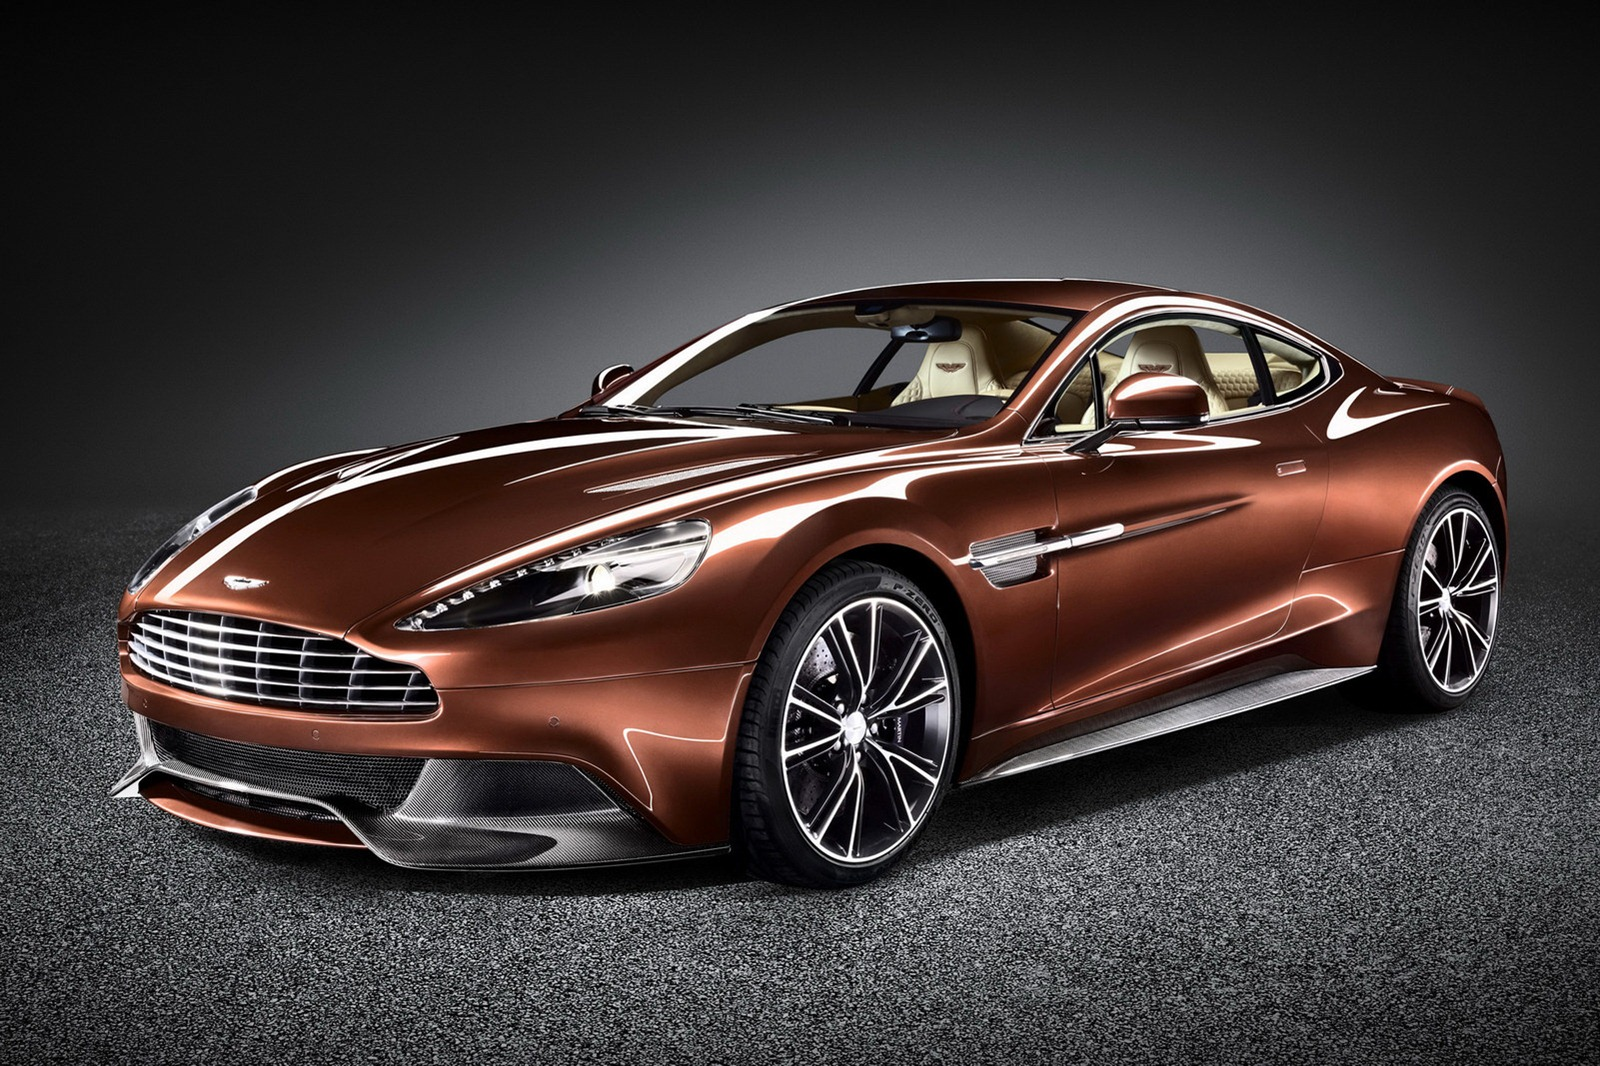 Aston Martin Vanquish Wallpaper For Background Wallpaper